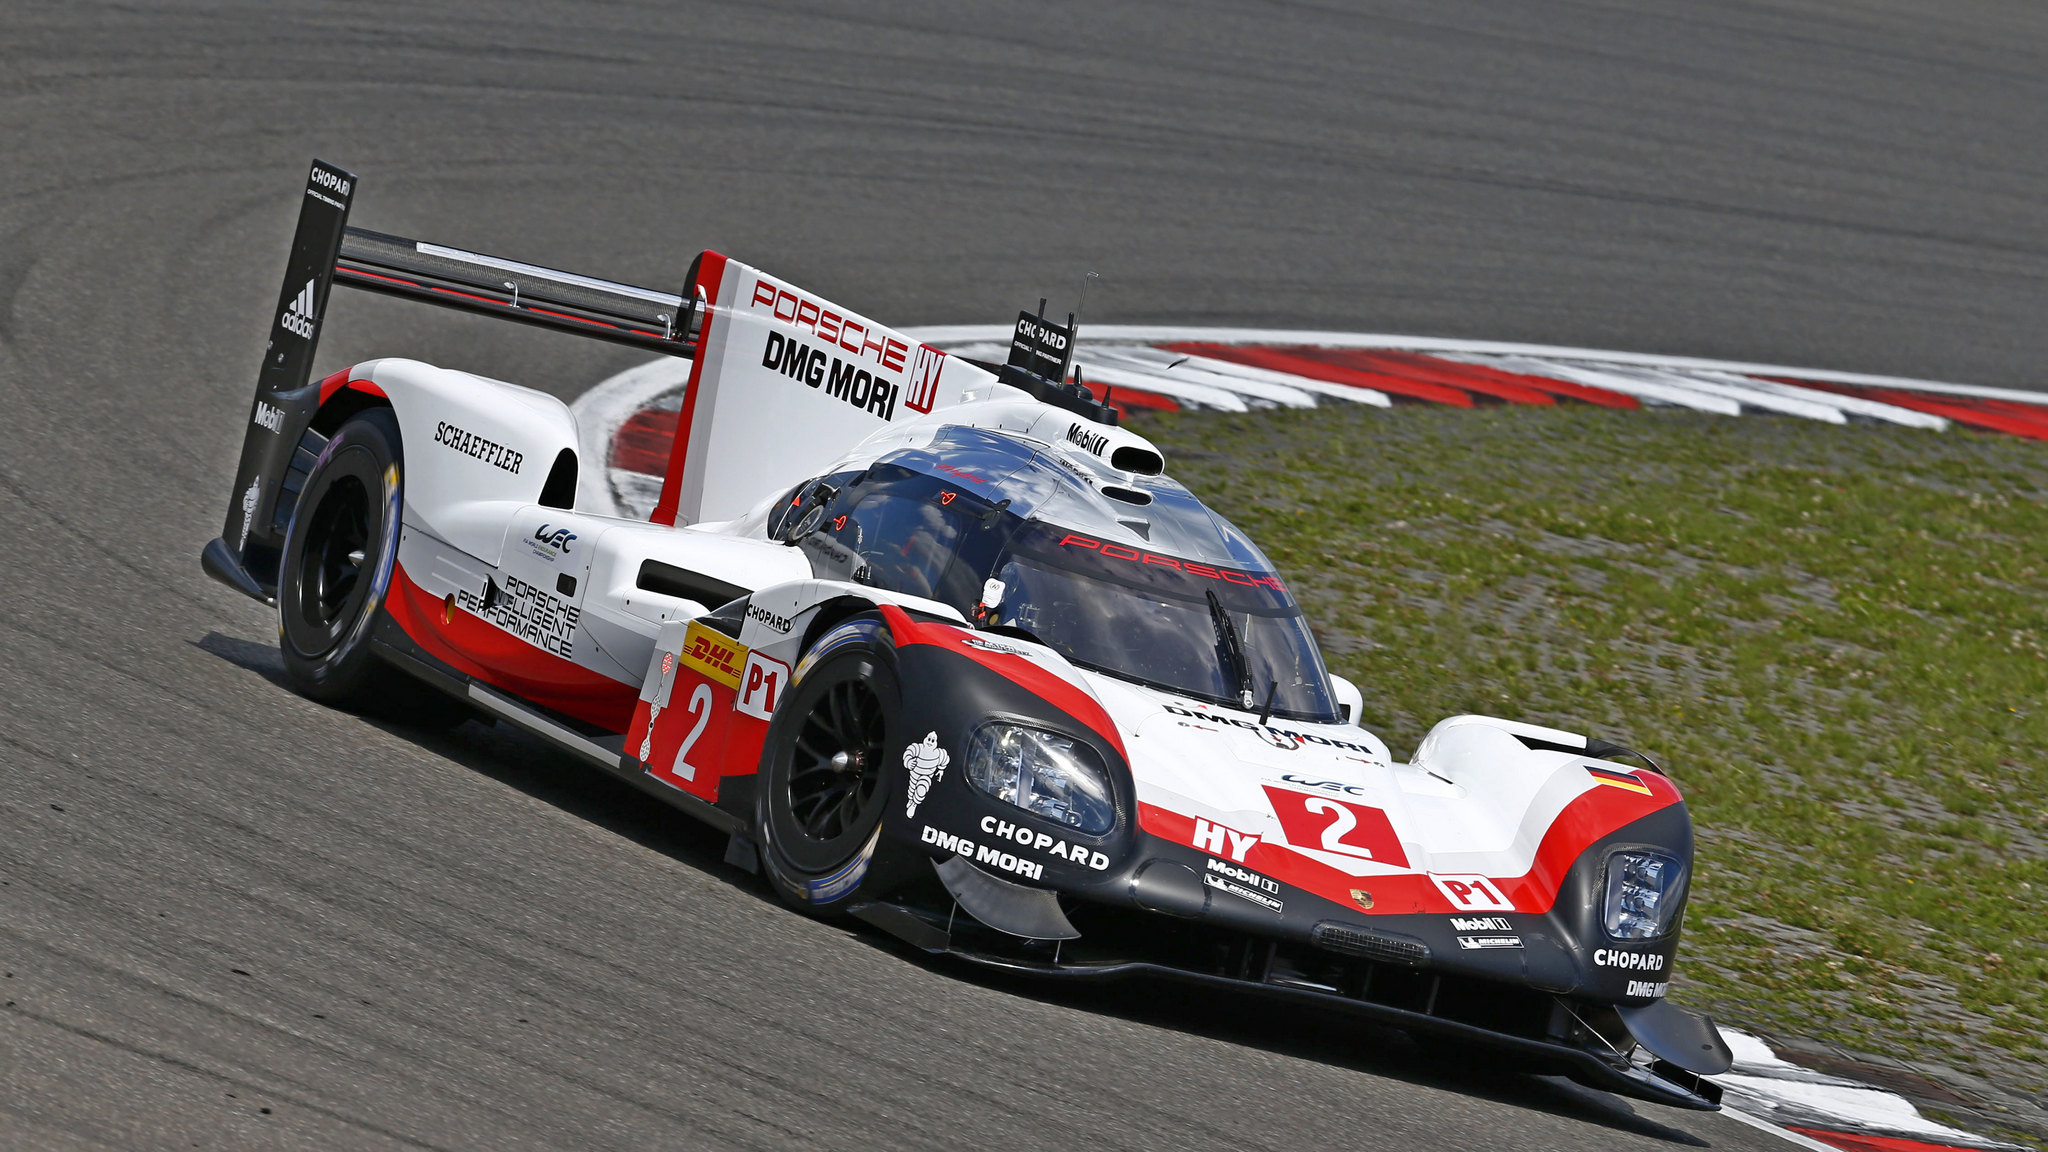 LMP1: New motorsport strategy for Porsche as it pulls out of LMP1 end of 2017